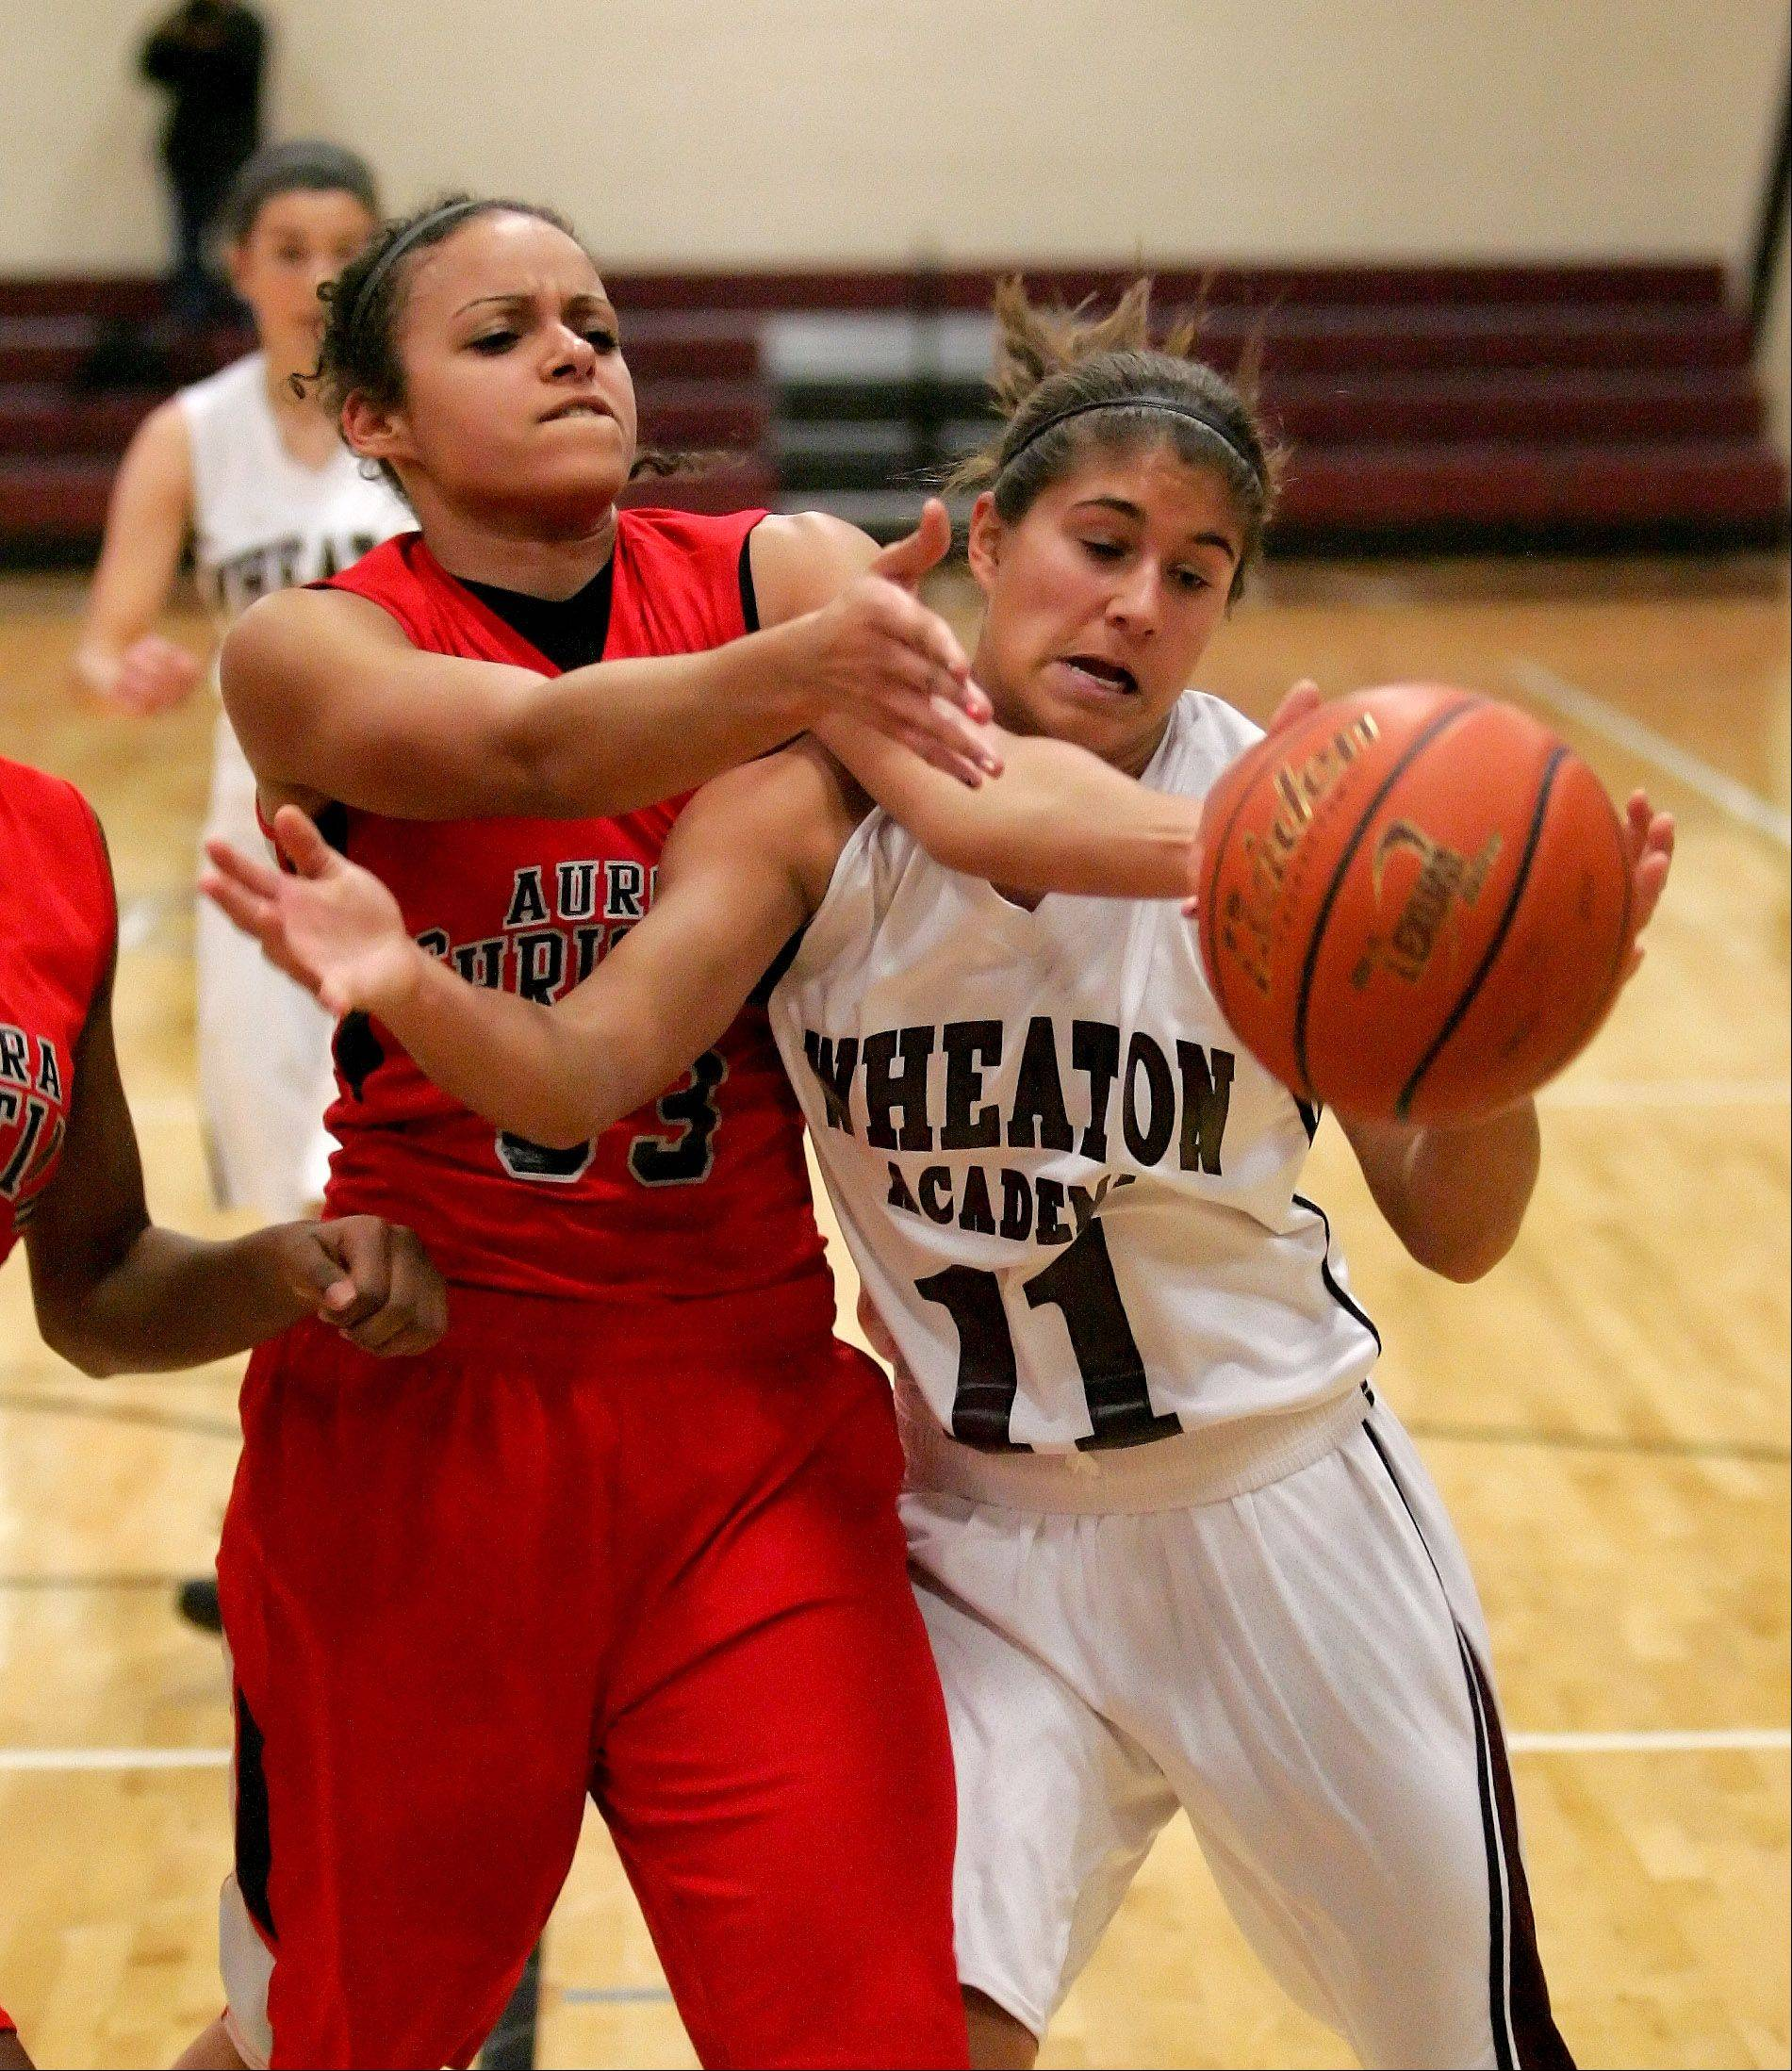 Choosy Aurora Christian drops Wheaton Academy